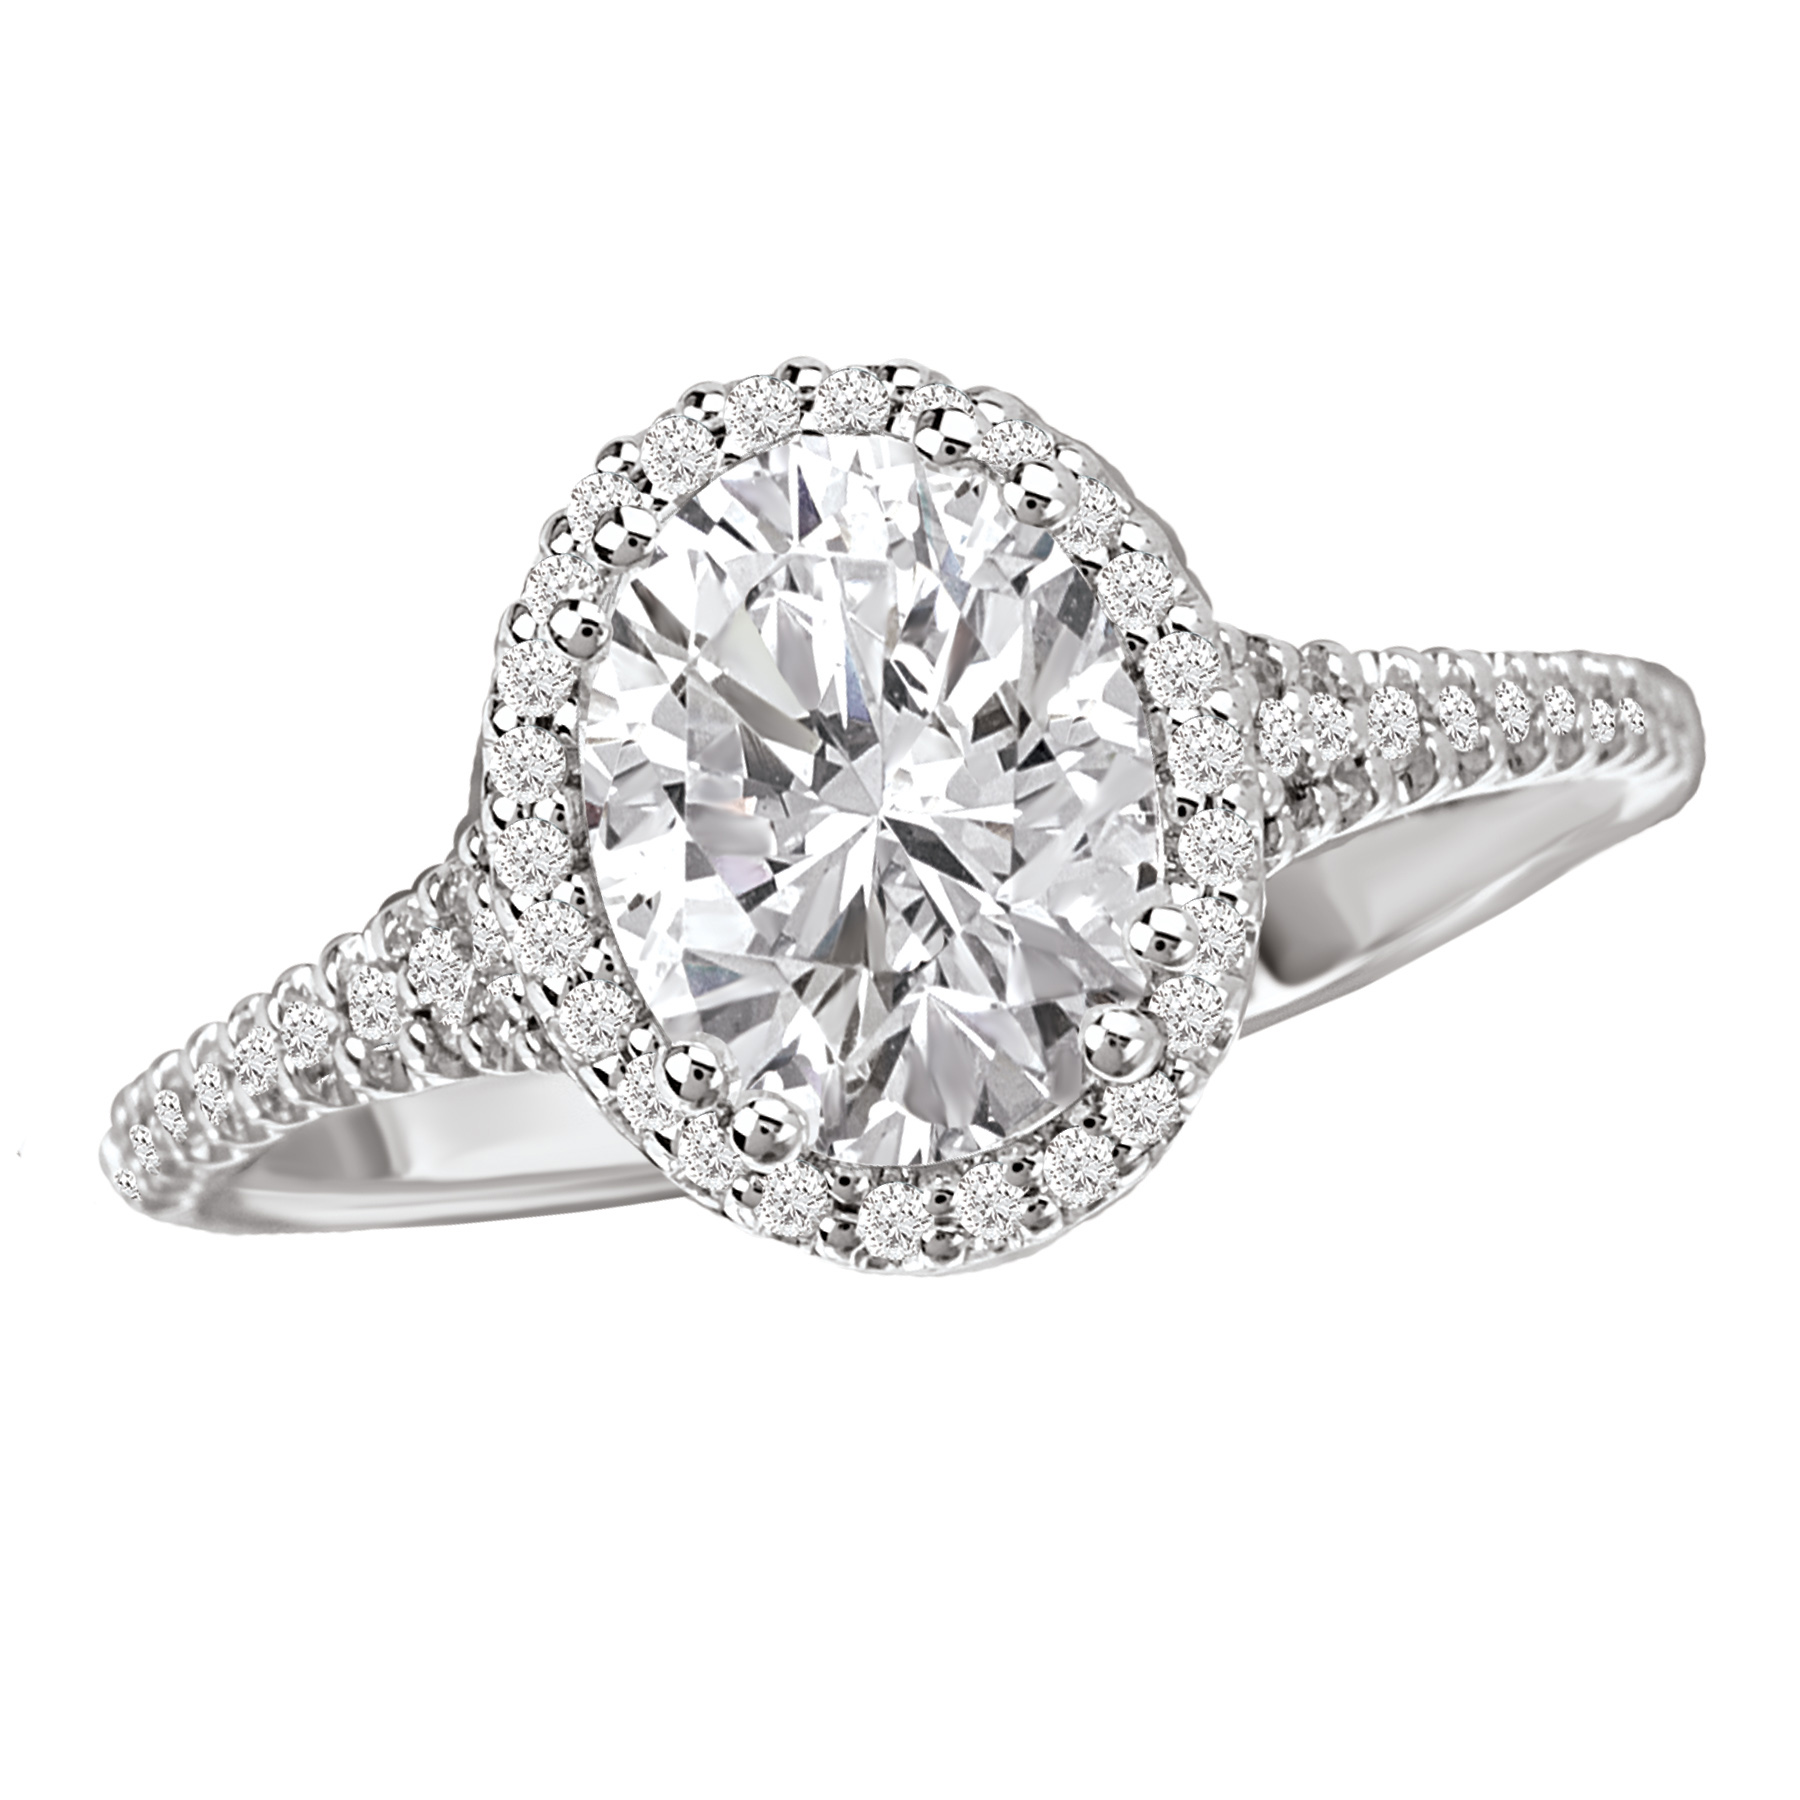 Classic oval halo diamond engagement ring by Romance Diamond